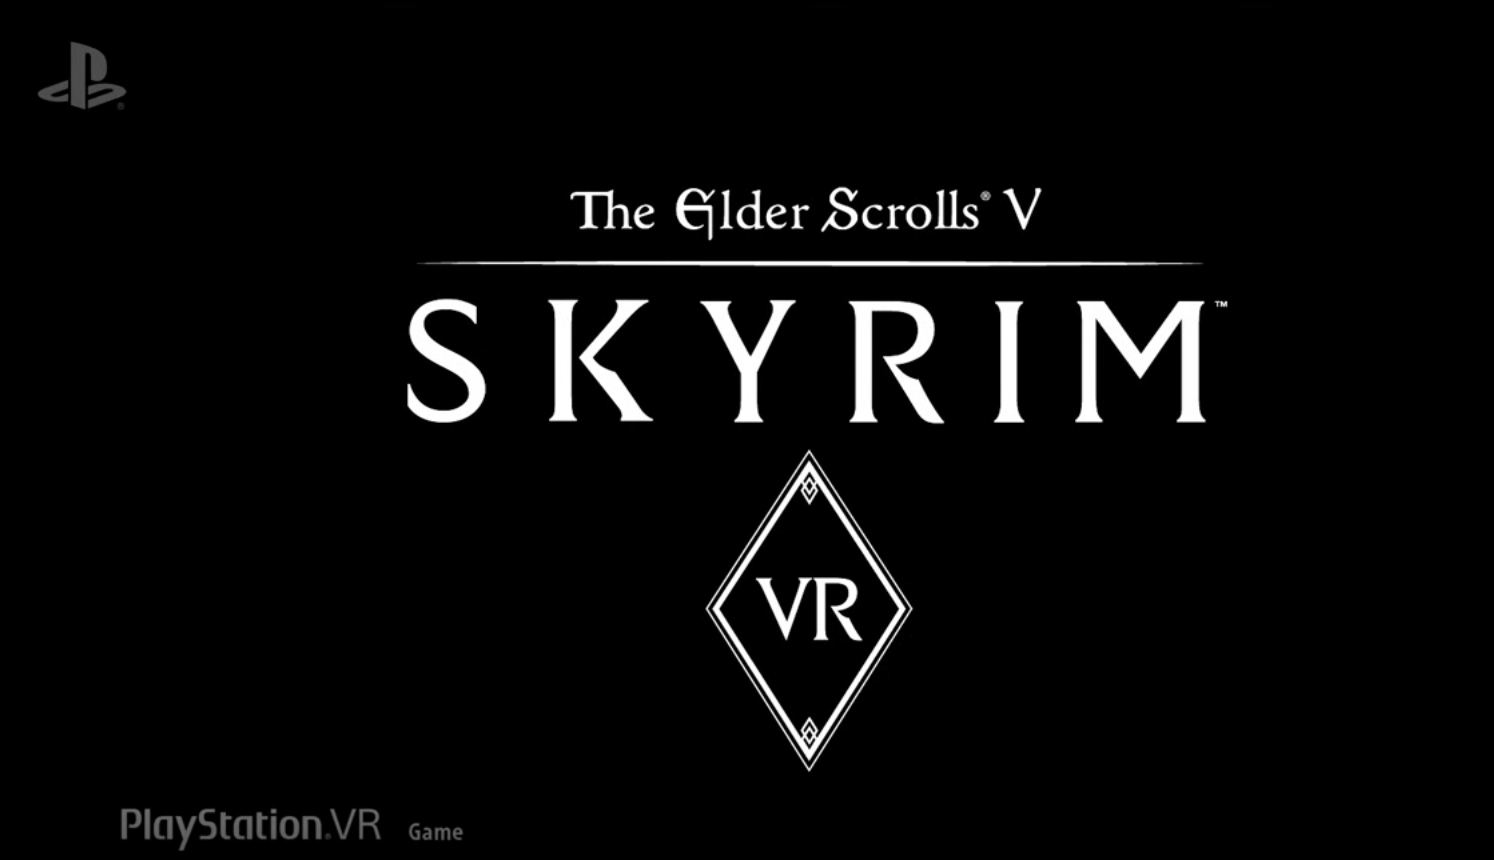 Sony Announces Skyrim VR For PlayStation VR This November